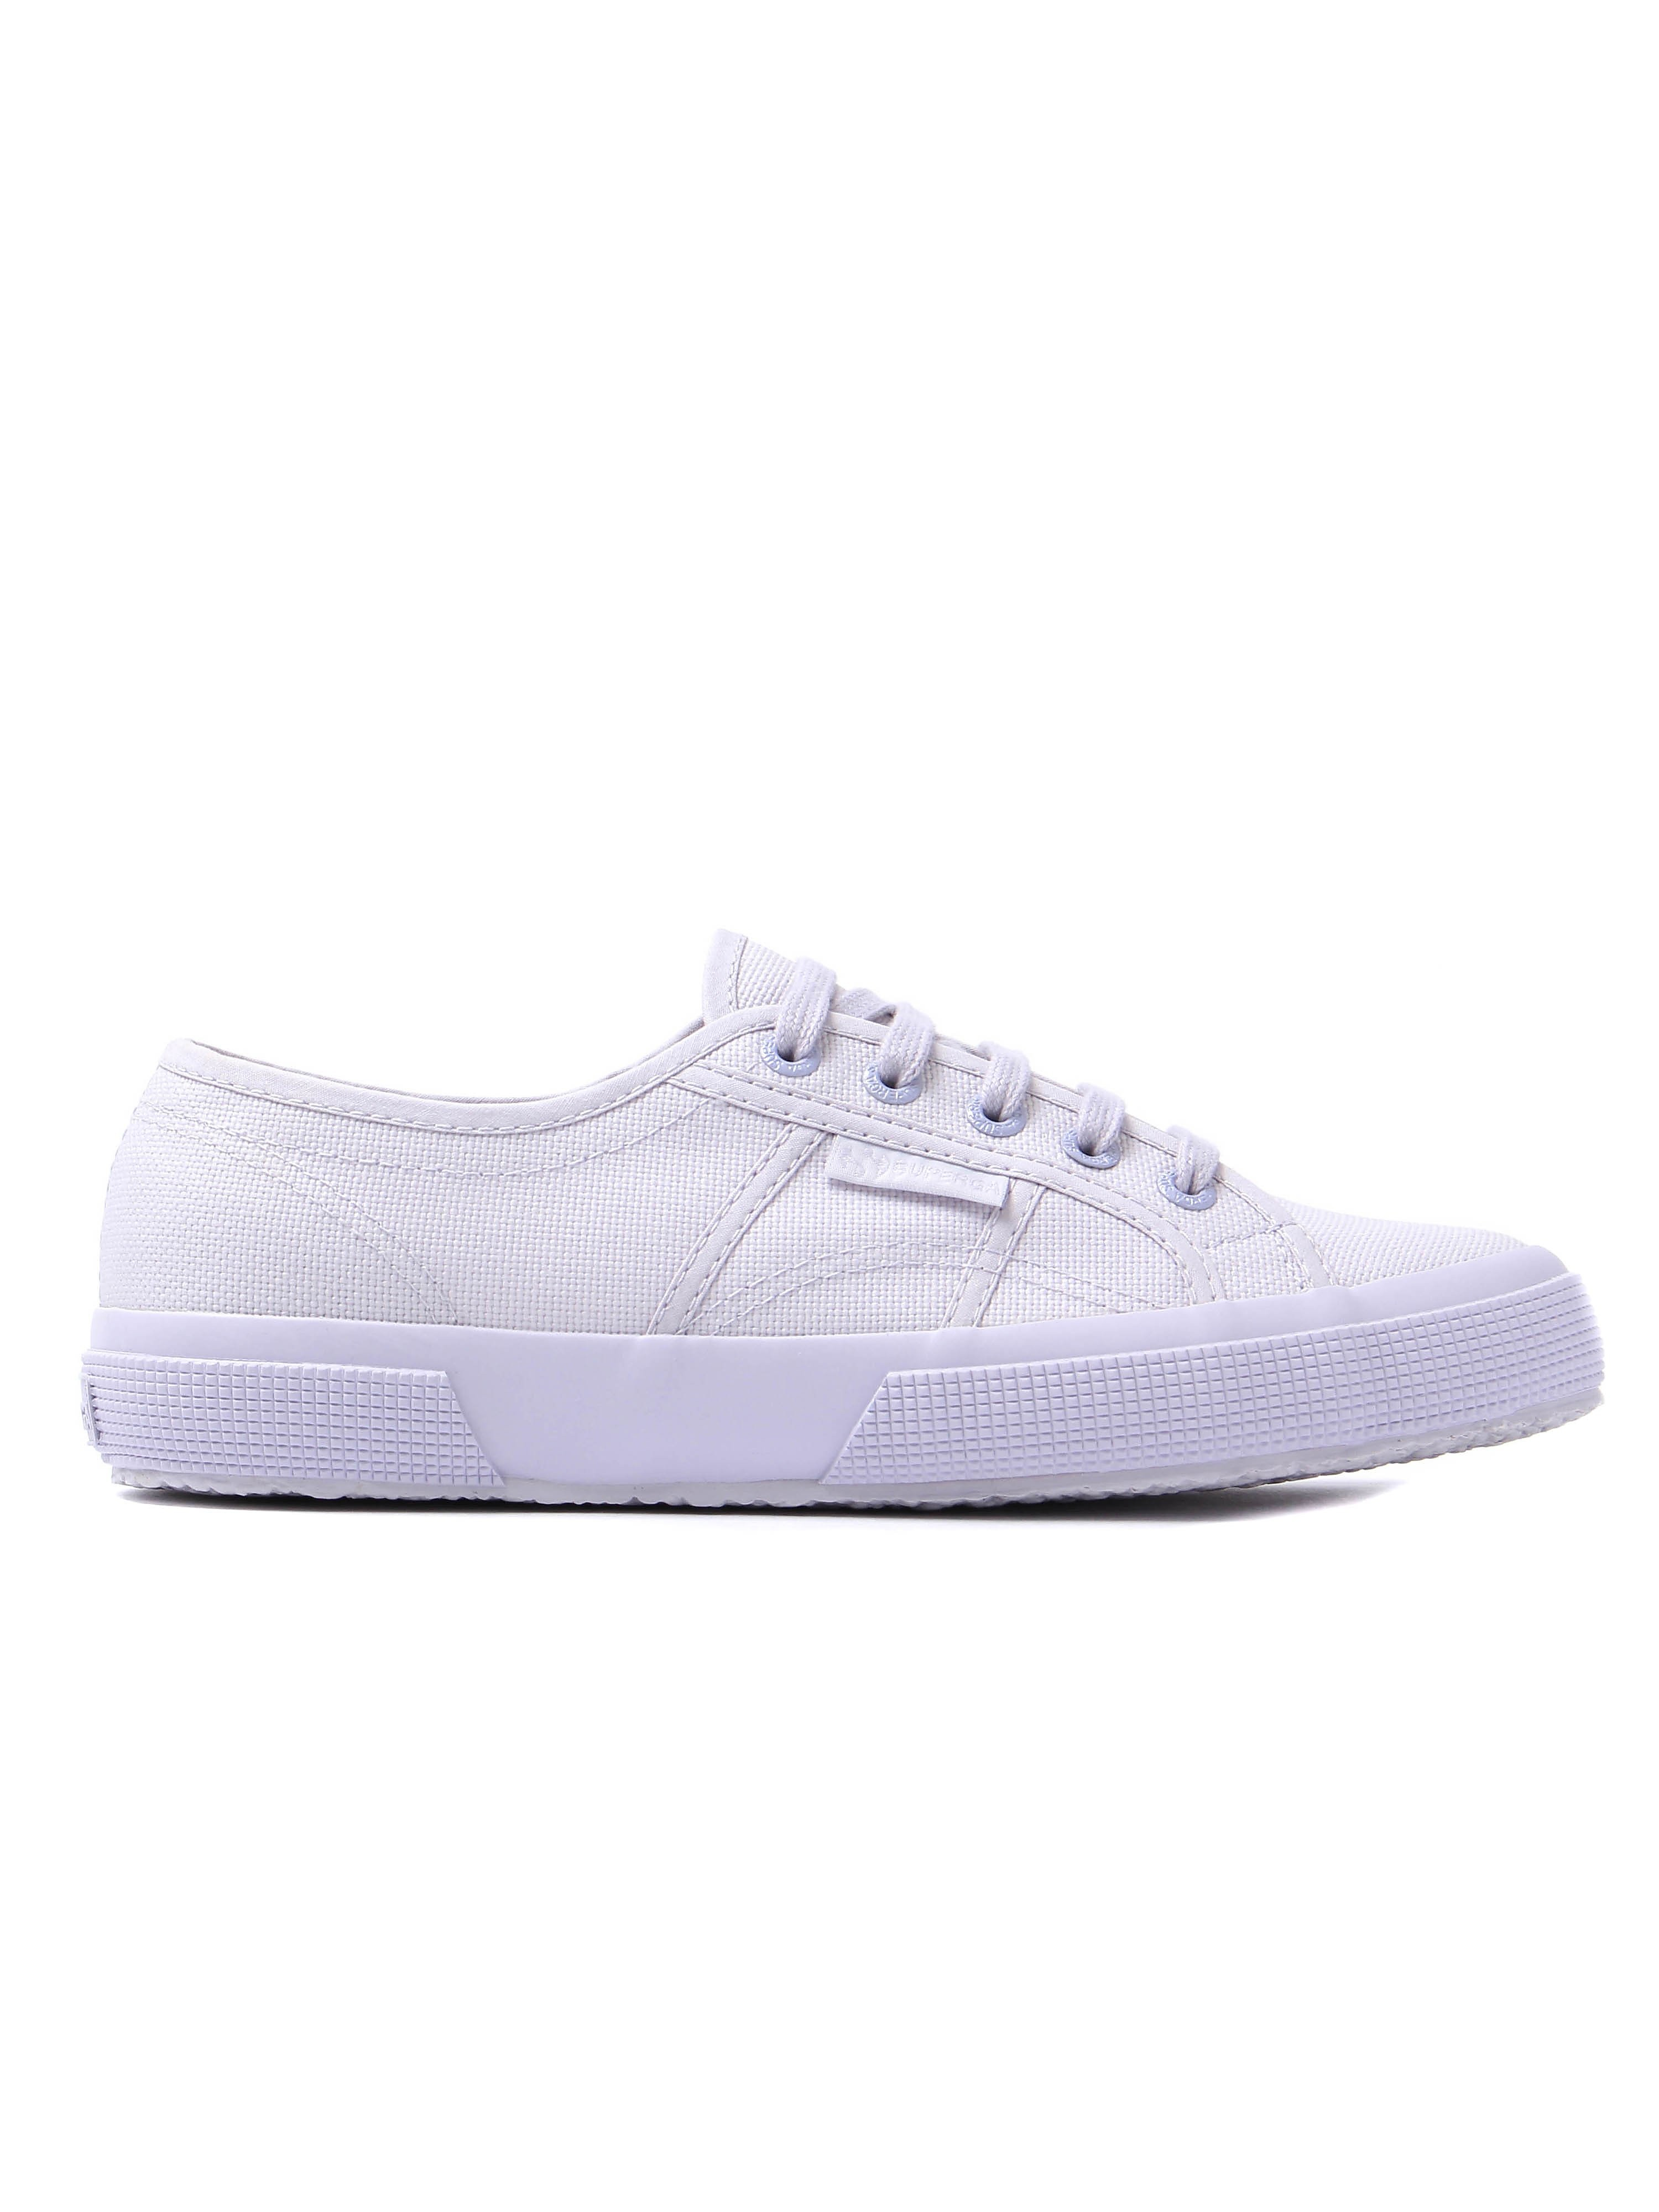 Superga Women's 2750 Cotu Classics Canvas Trainers - Total Violet Light